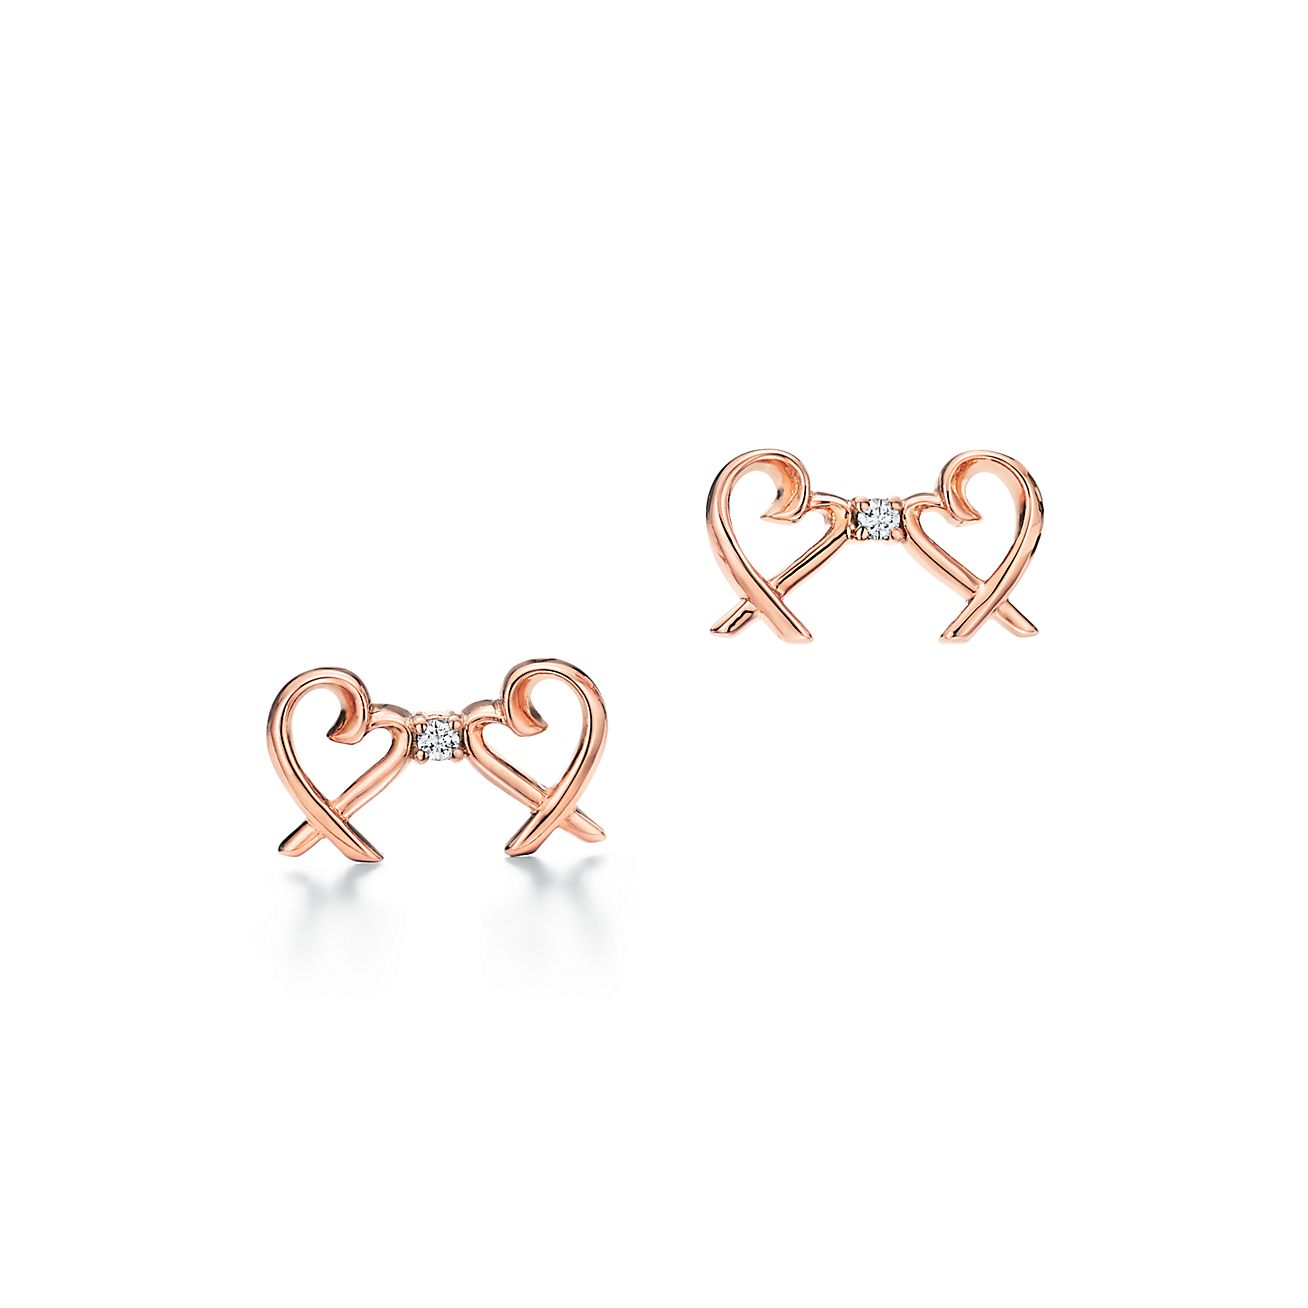 14a4ddf44b72c Shop Tiffany & Co. Earring on sale at the Marie Claire Edit